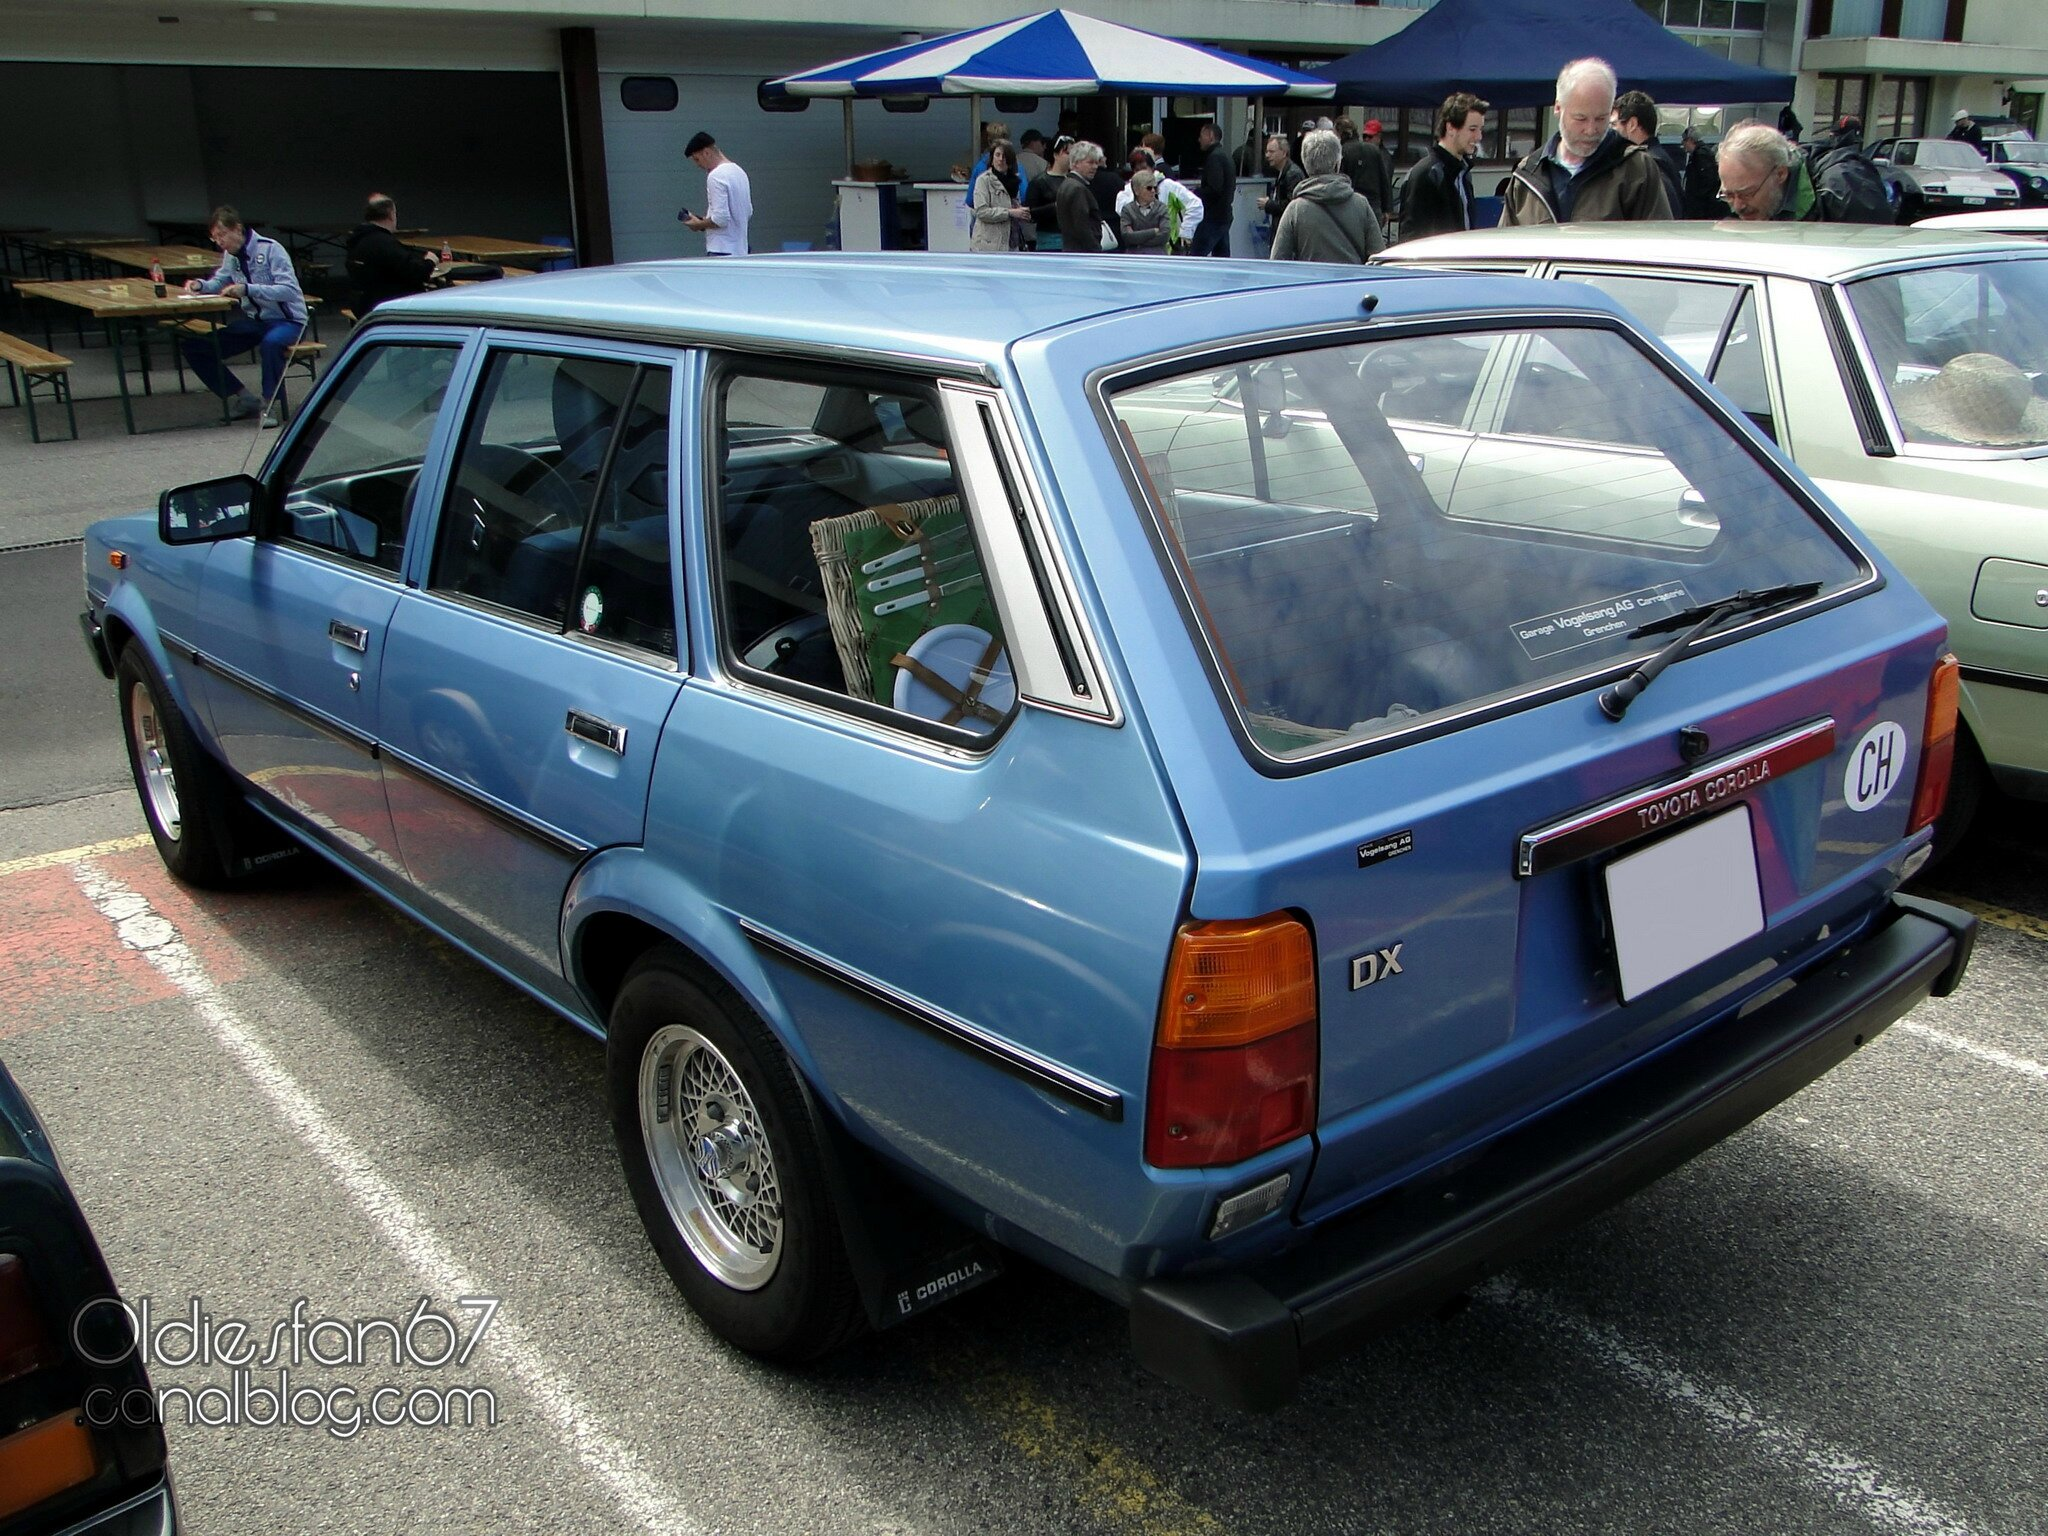 toyota corolla dx wagon 1982 oldiesfan67 mon blog auto. Black Bedroom Furniture Sets. Home Design Ideas